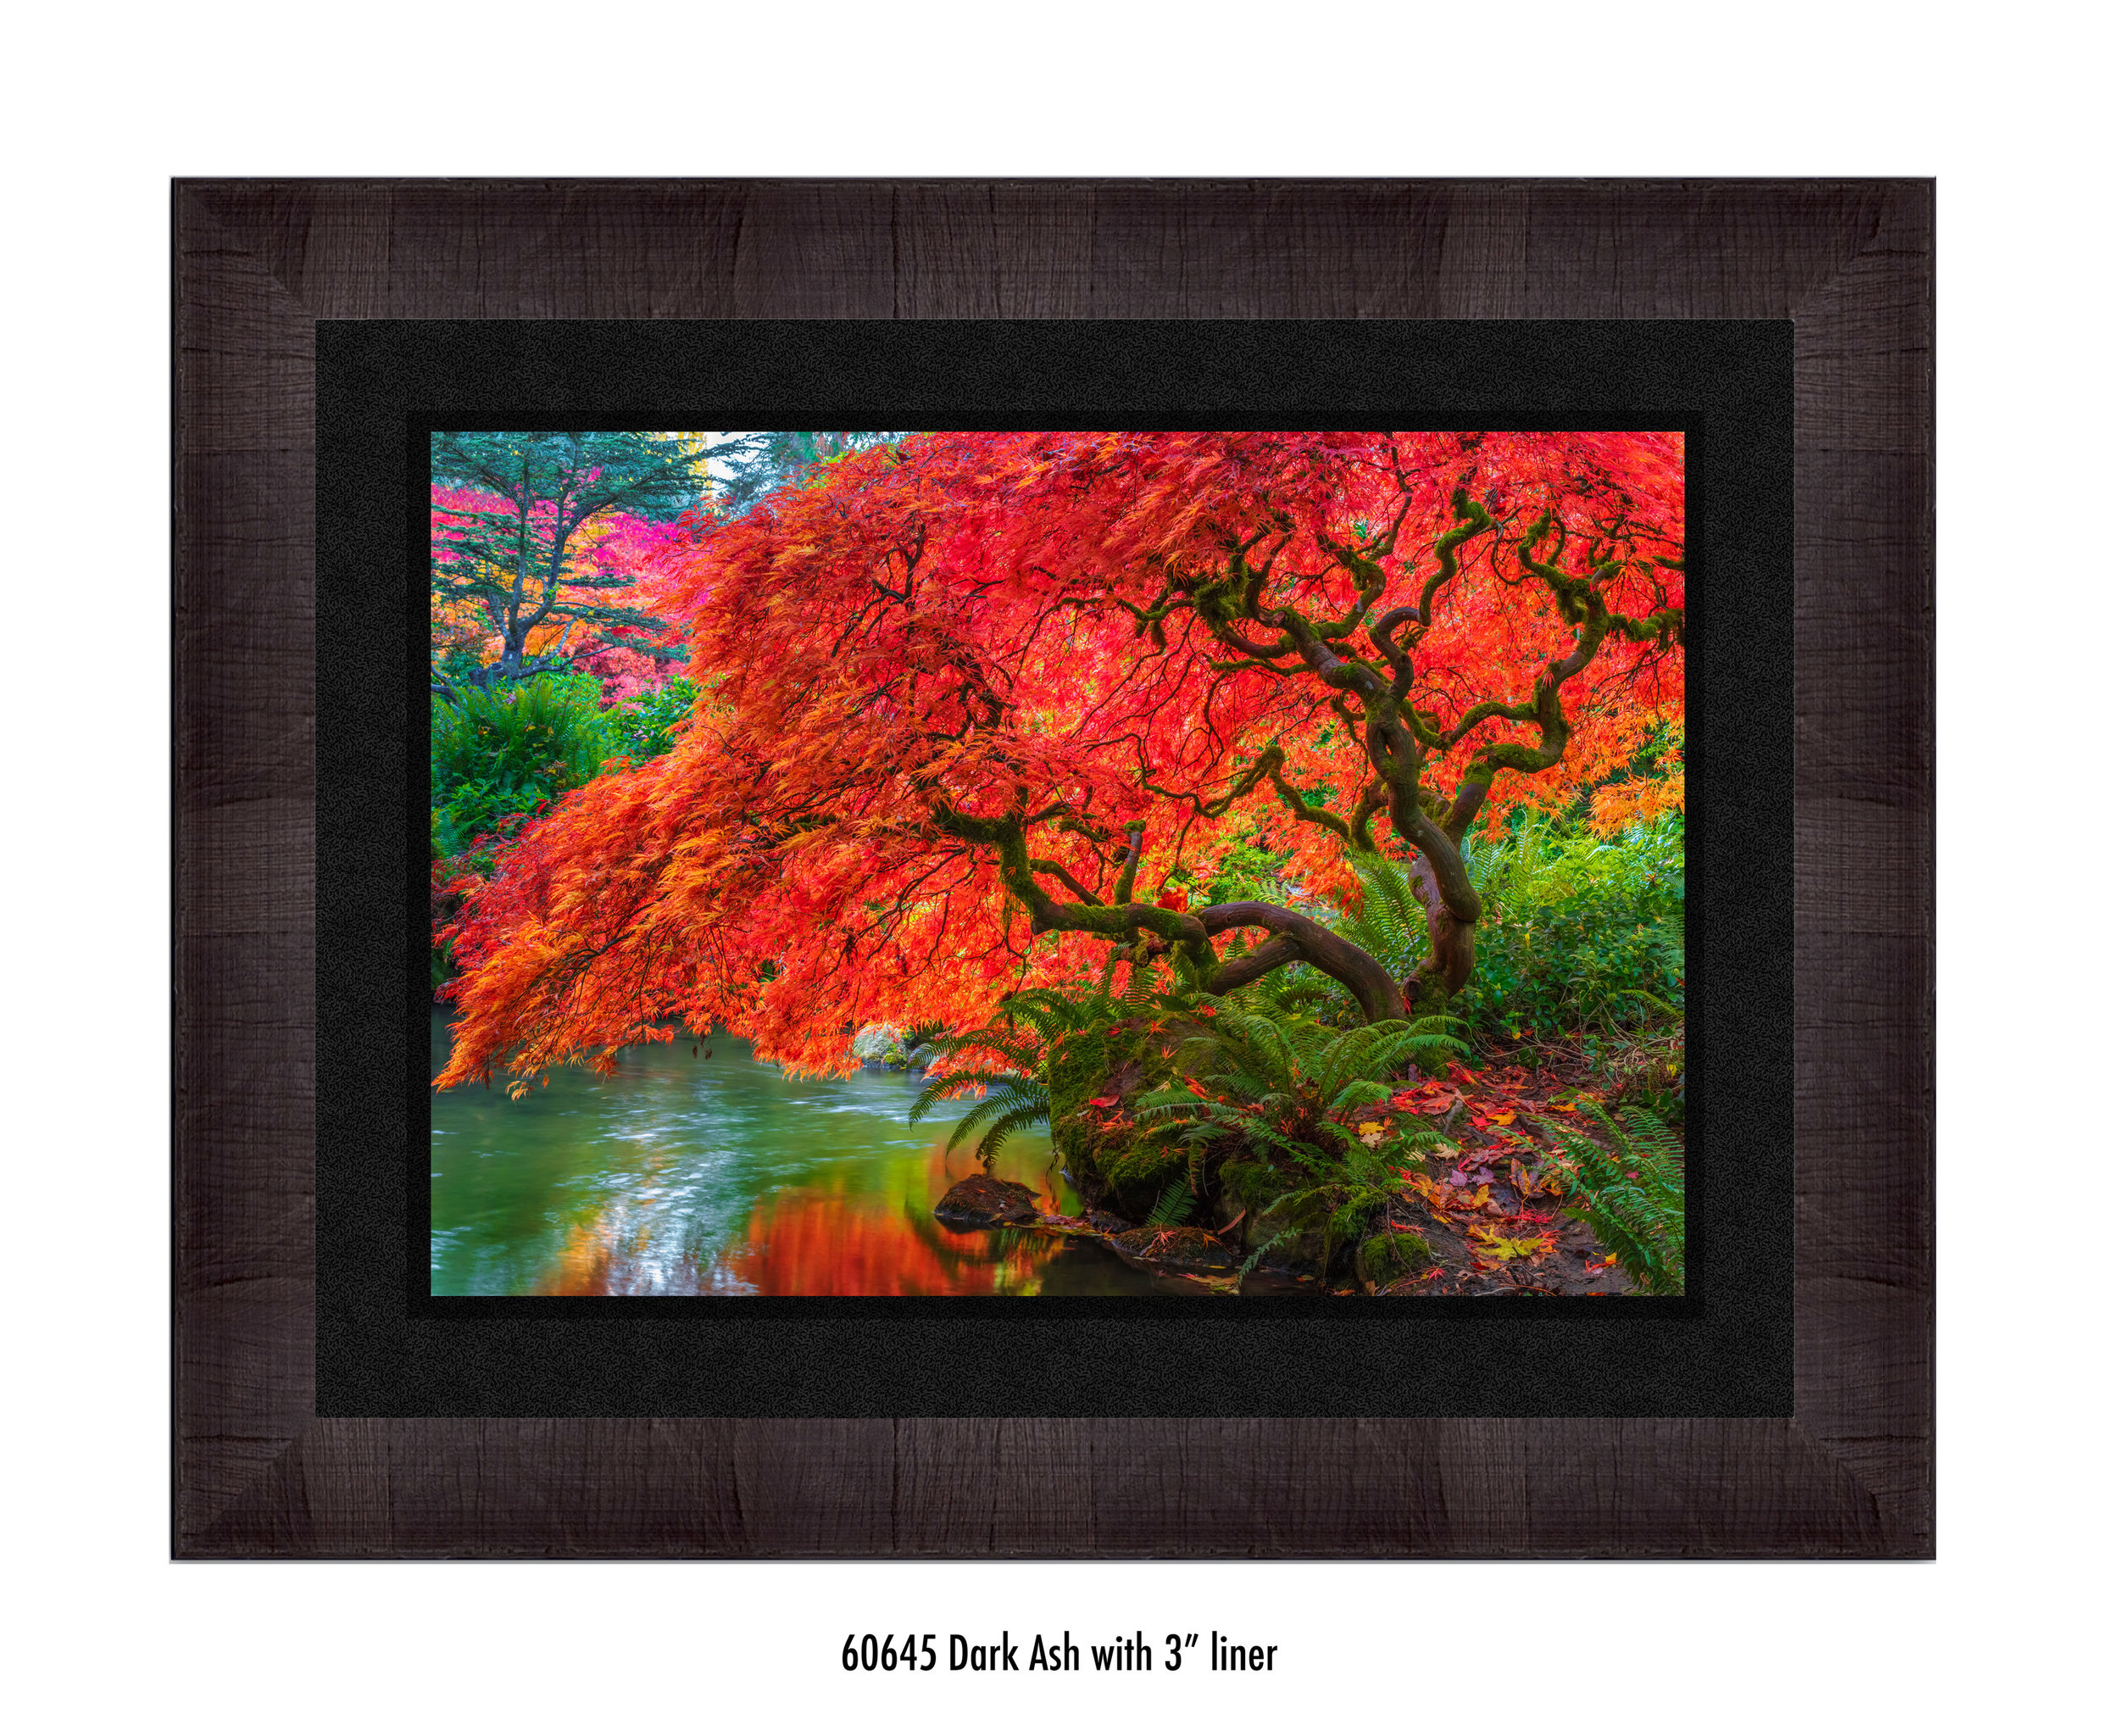 Tree-of-Fire-60645-3-blk.jpg